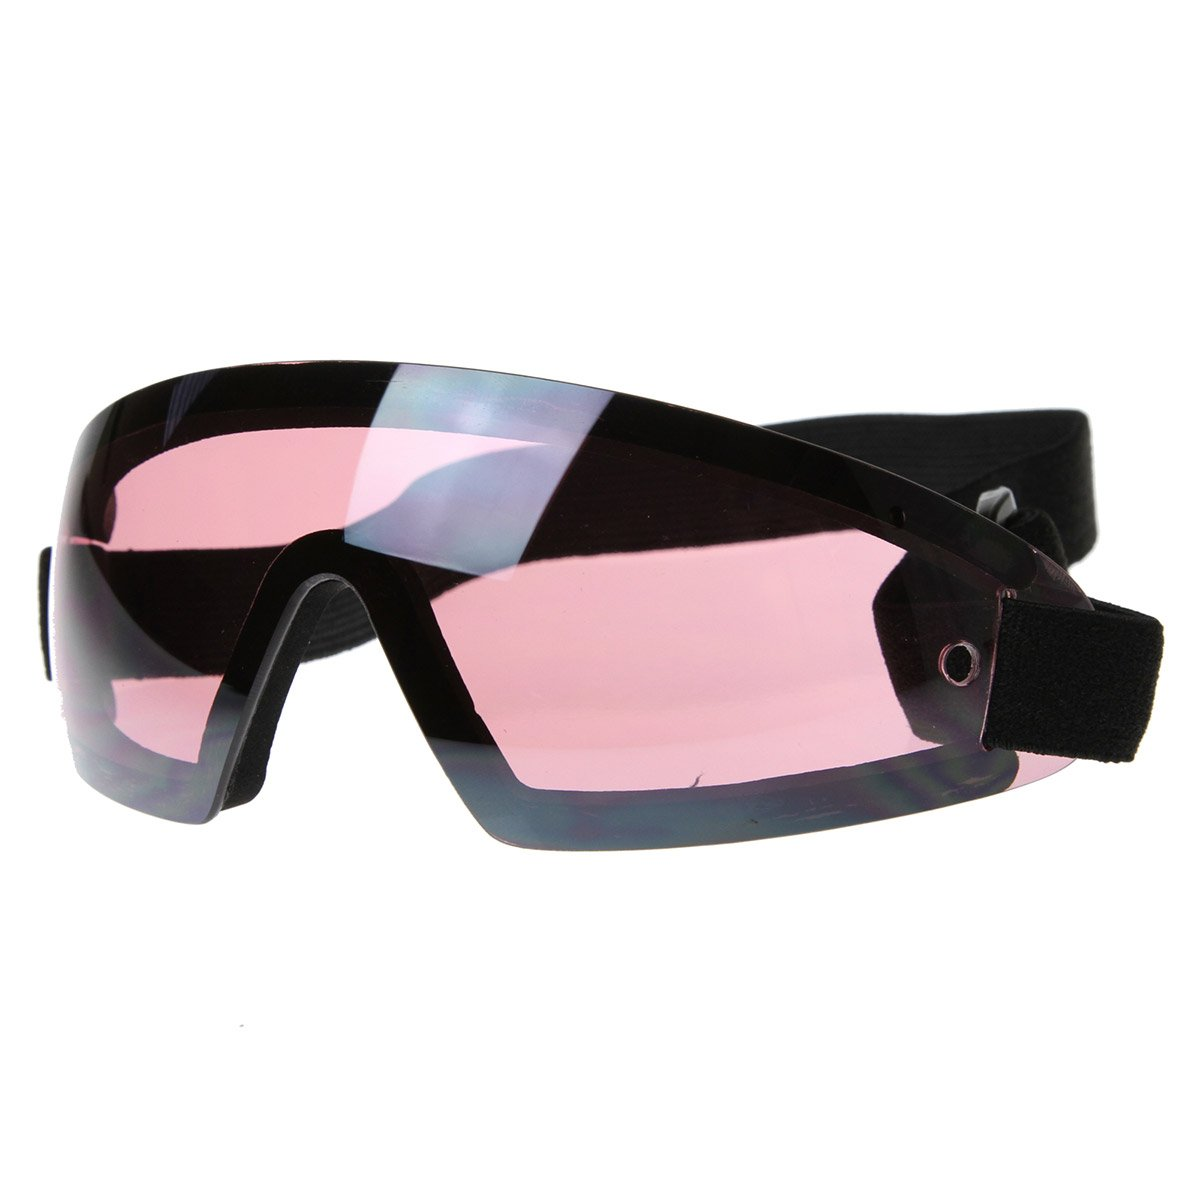 Frameless Protective Eyewear UV400 | Sports Shield Goggles with Adjustable Strap (Black Pink)